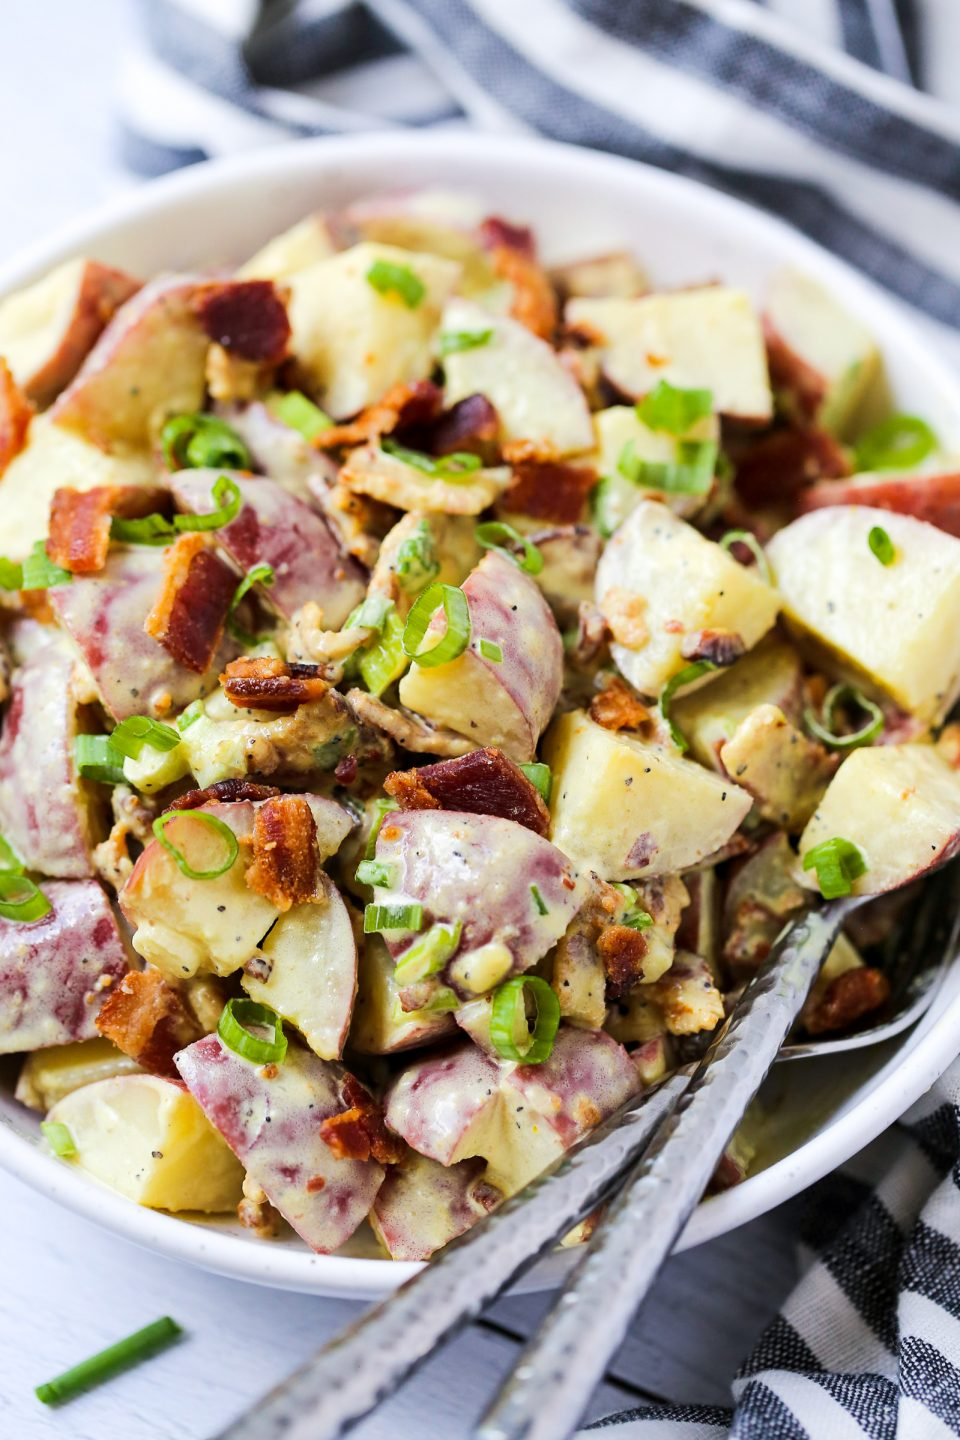 Potato salad with a honey mustard dressing and topped with chives and bacon.